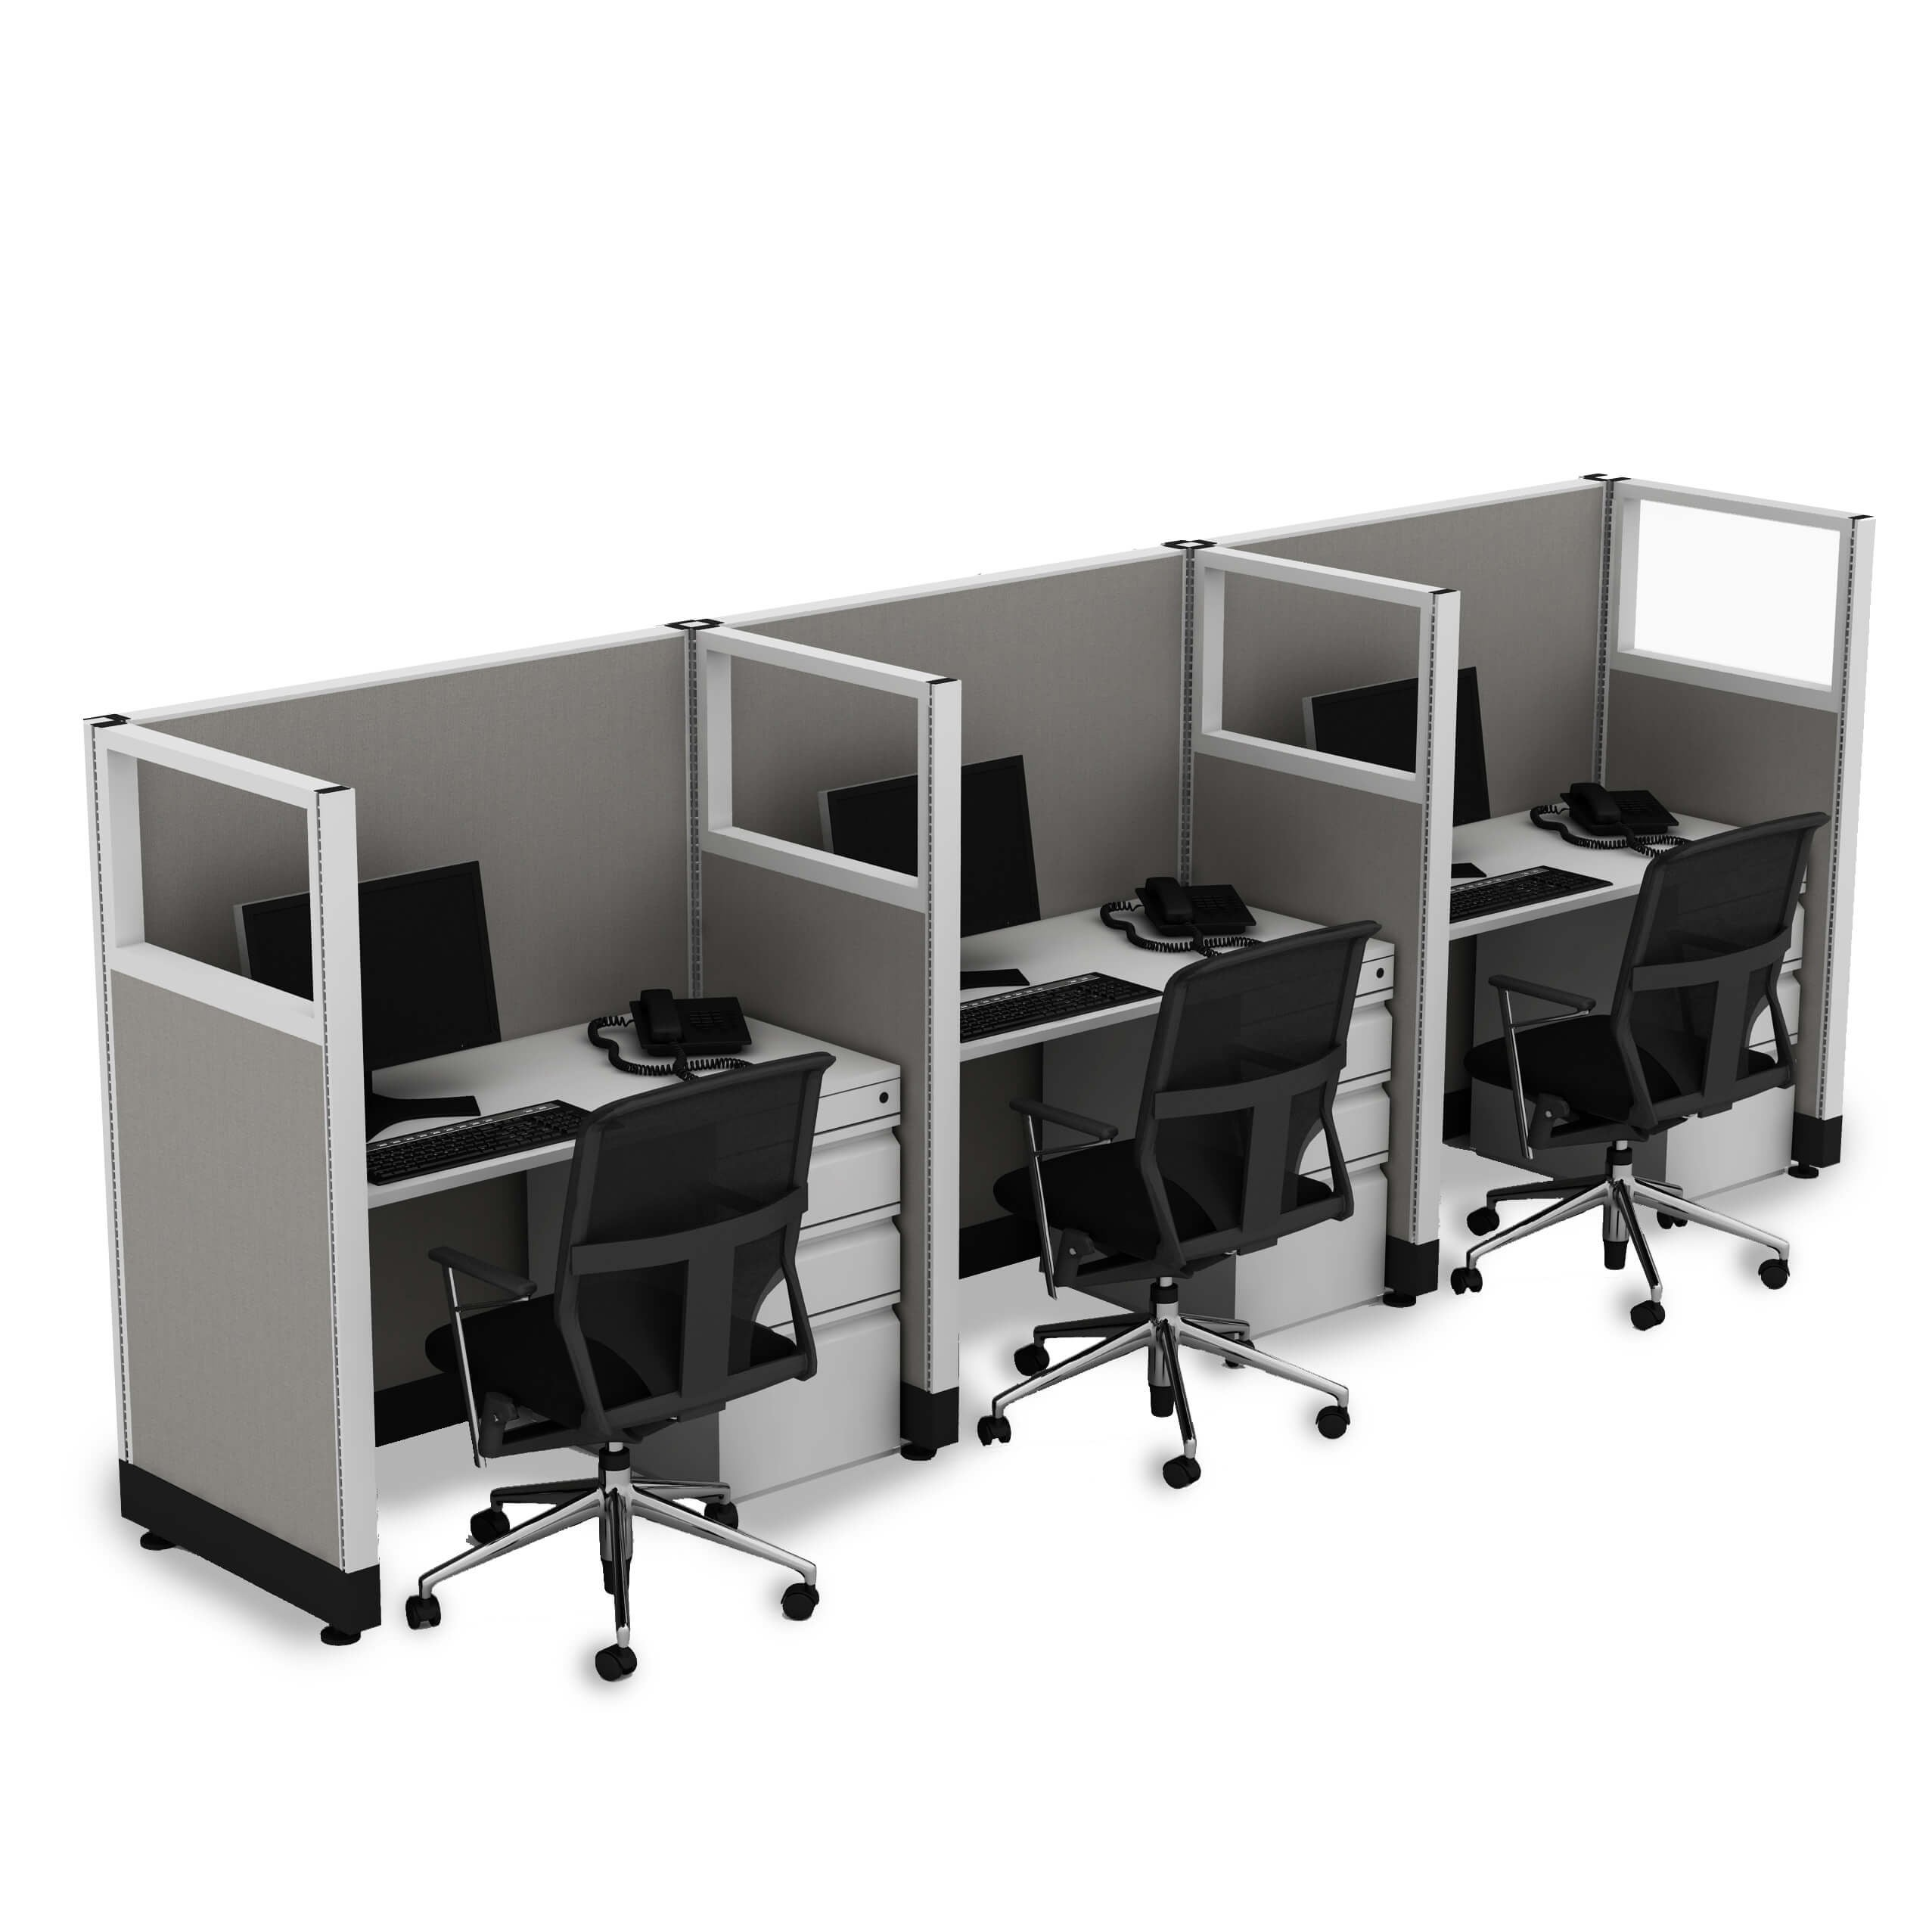 Cubicle Workstations 53H 3pack Inline Powered (4x4 - Espresso Desk Silver Paint - Assembly Required)